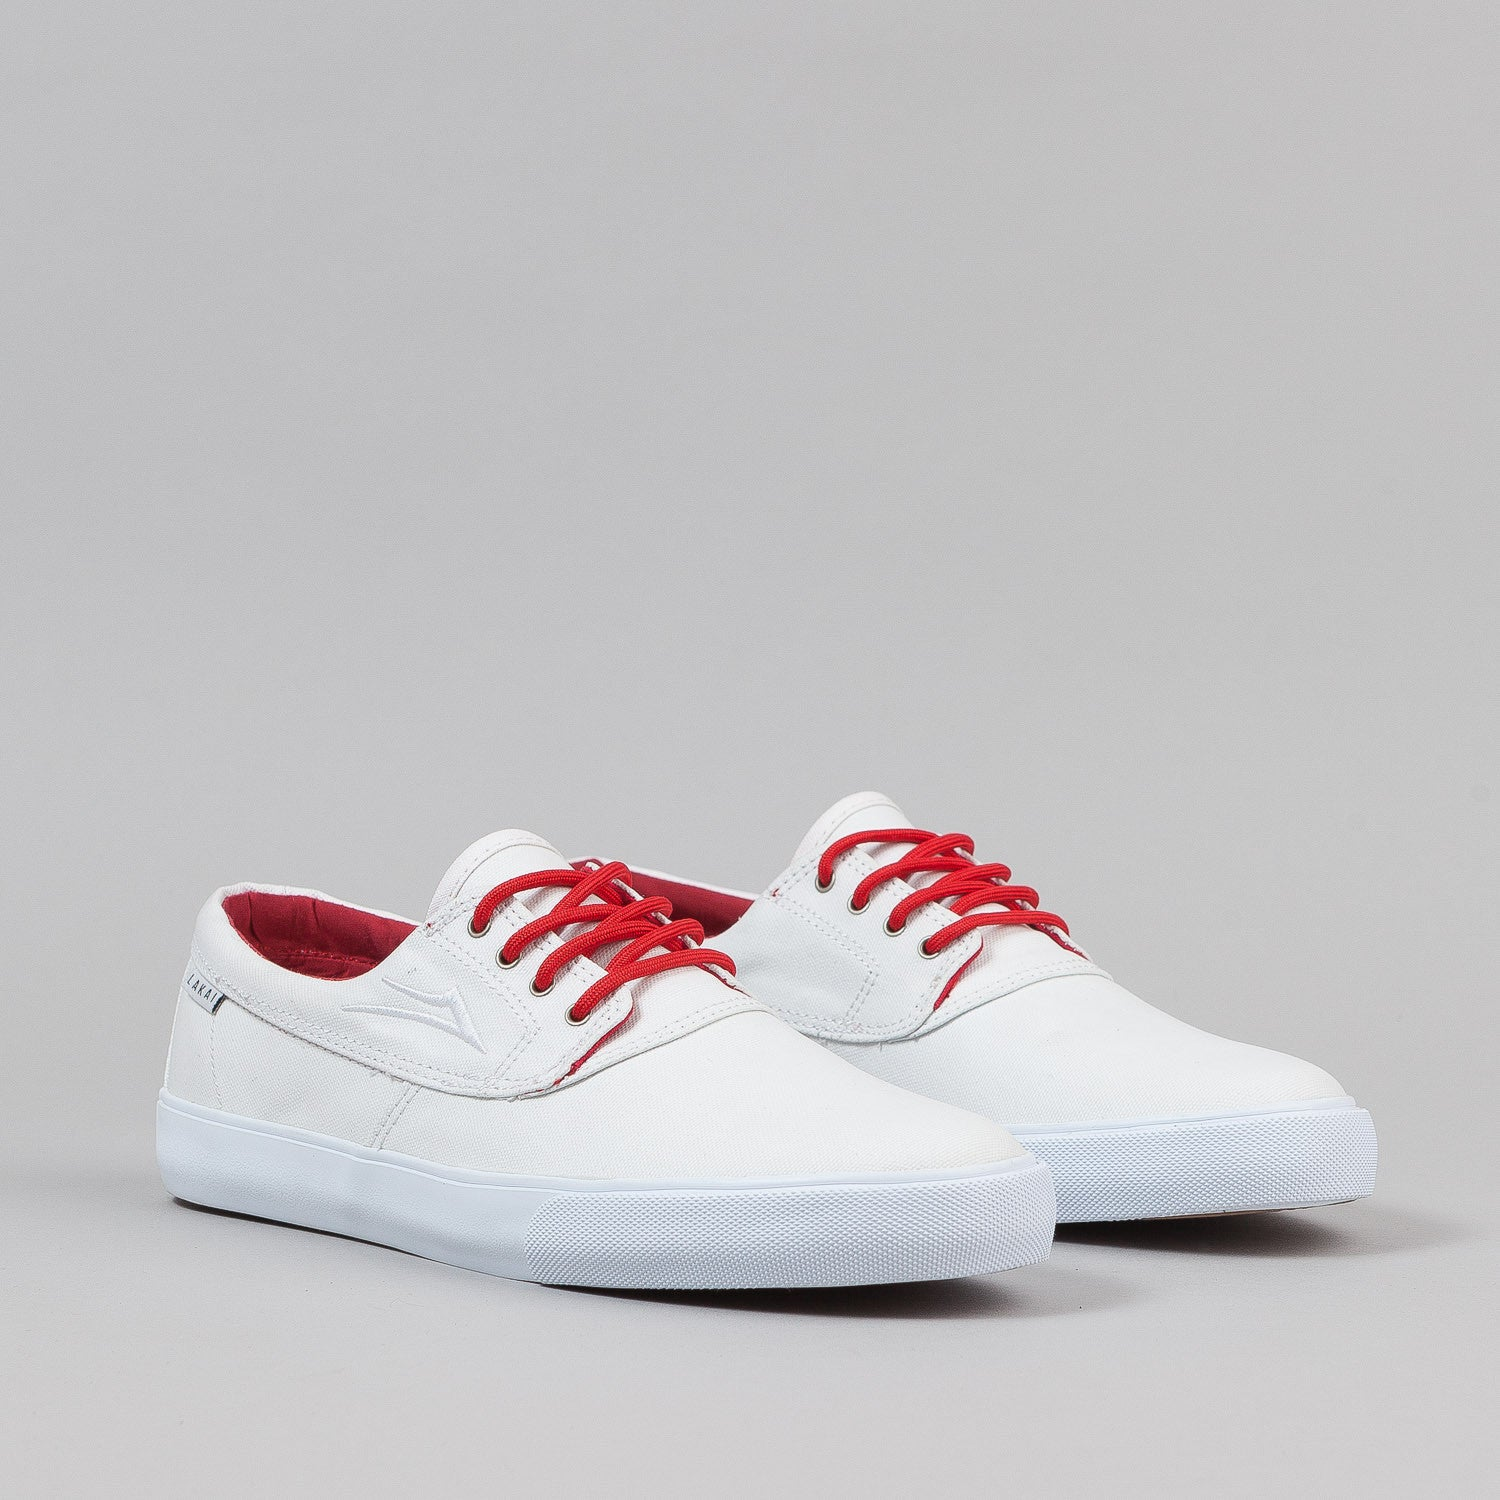 Lakai Anchor Camby Shoes - White / White PU Canvas